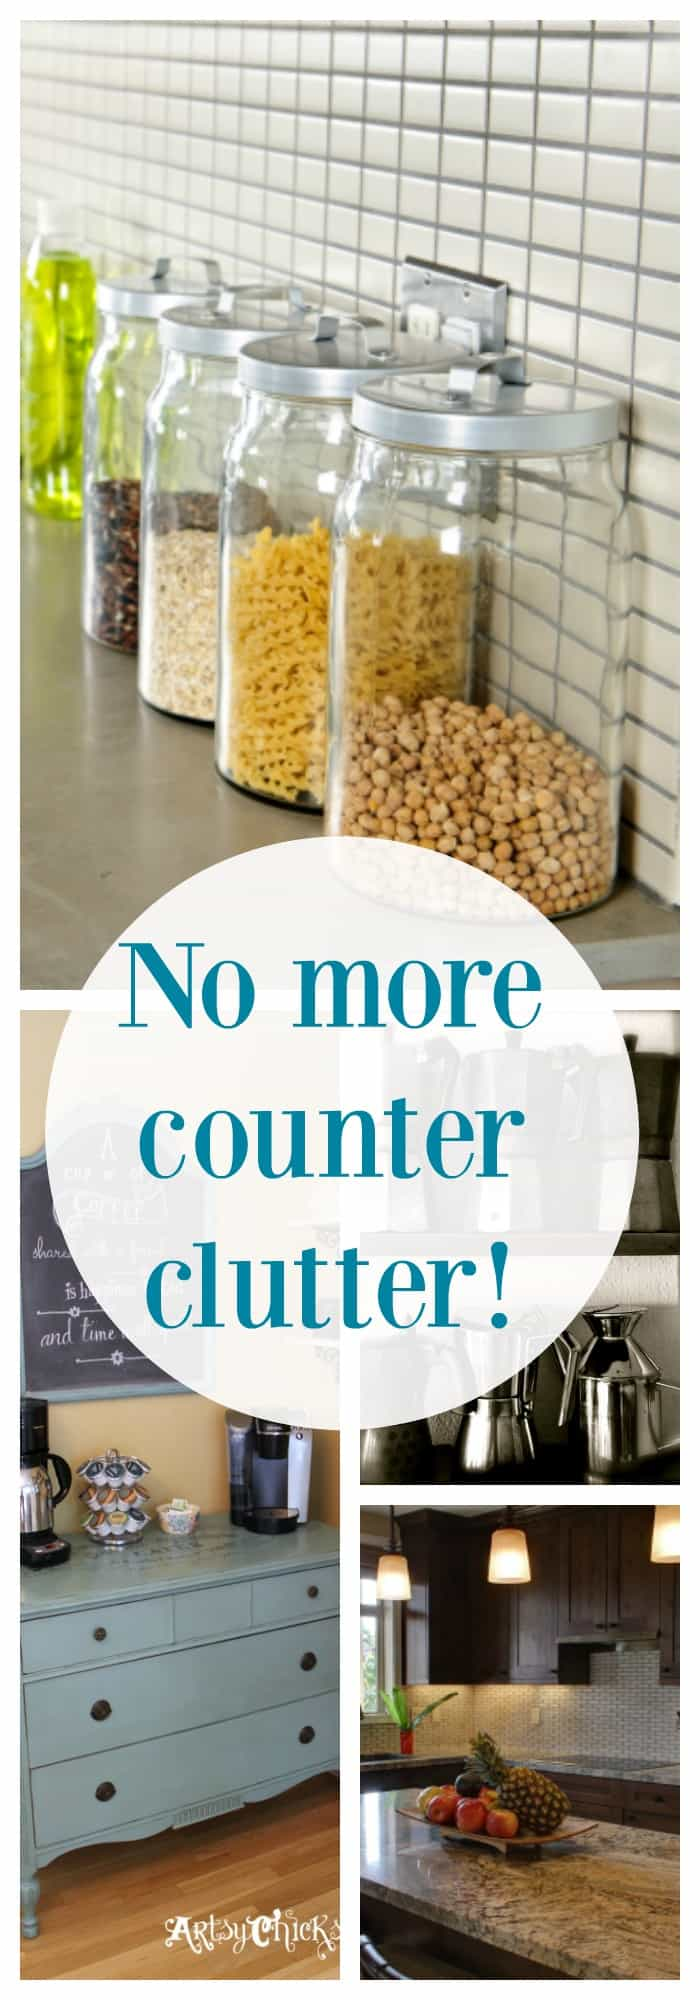 Get rid of kitchen clutter once and for all! www.organizedmom.net